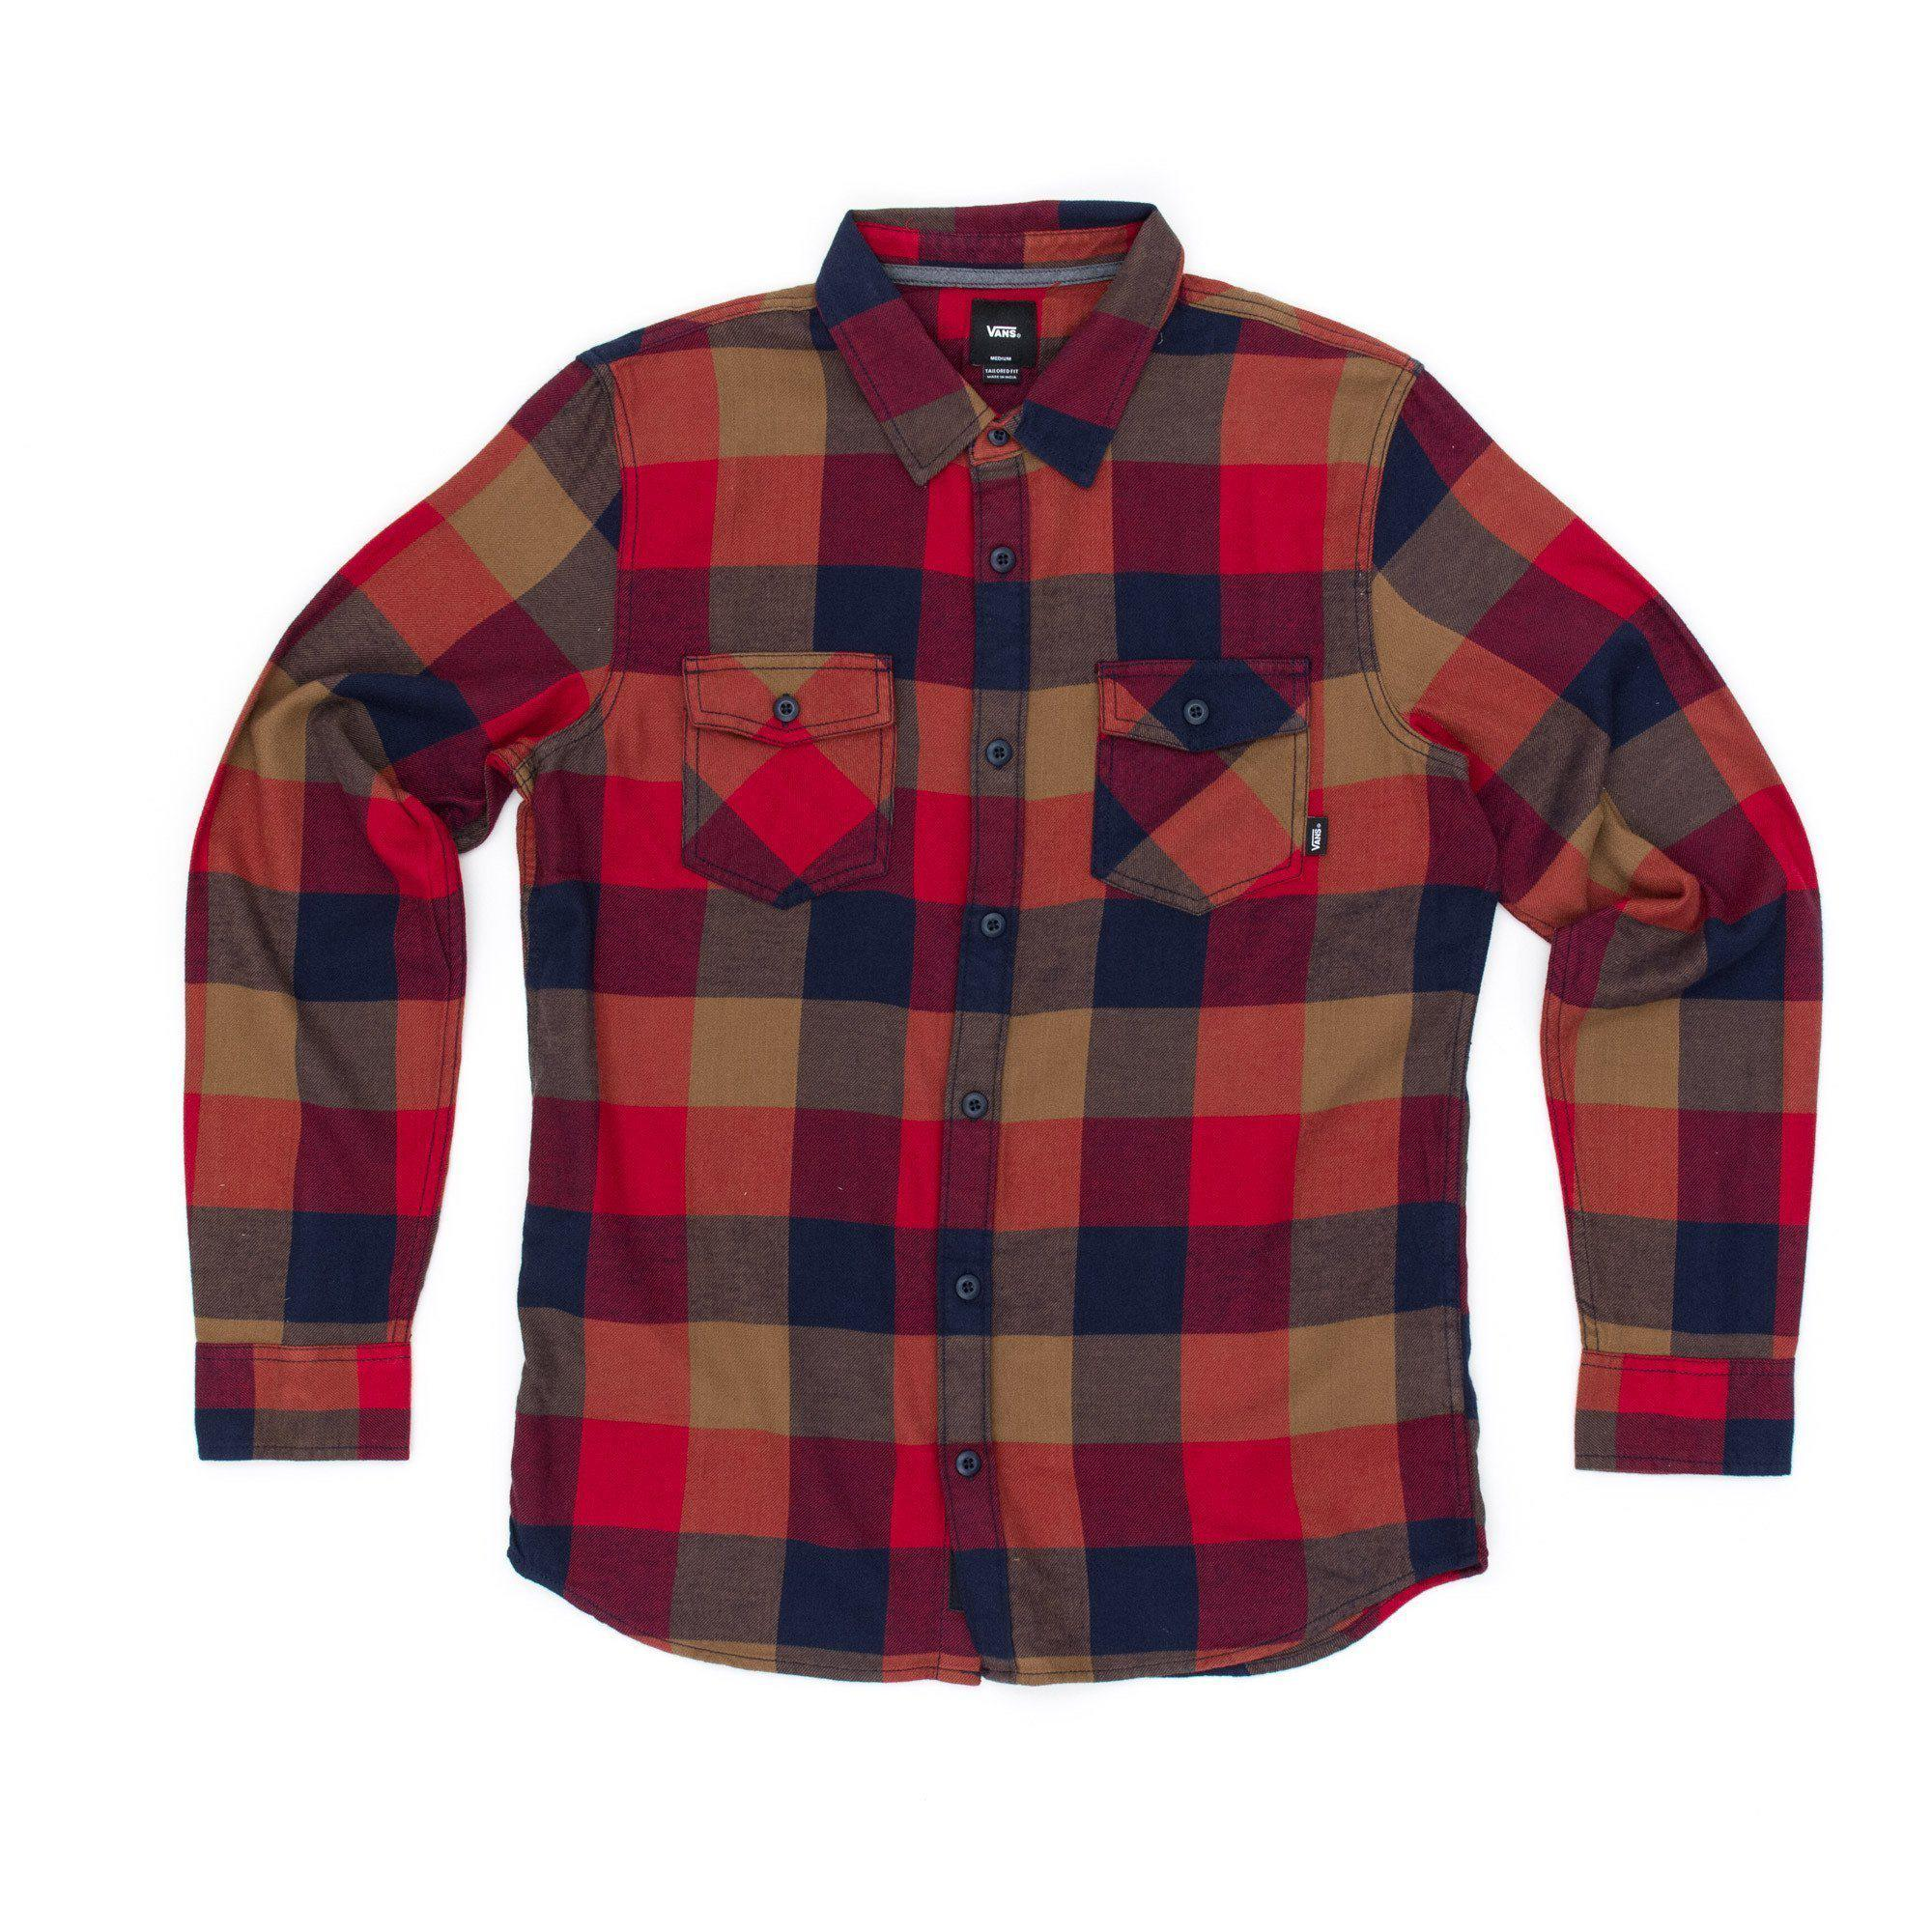 9467ccdecb1 Lyst - Vans Box Flannel Shirt in Red for Men